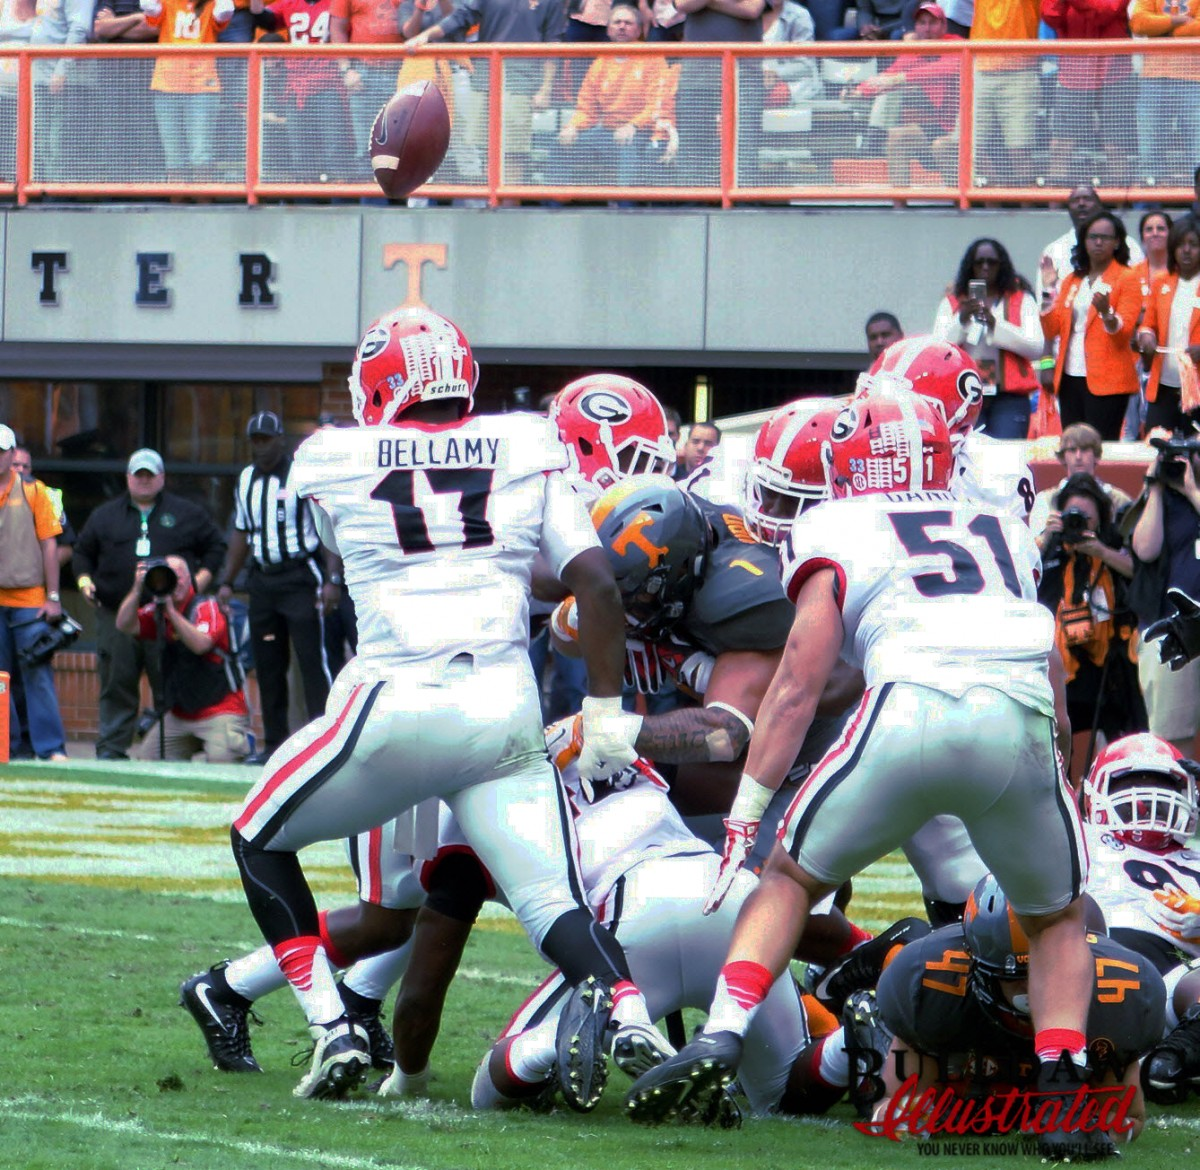 Davin Bellamy looks for the ball in all the wrong places